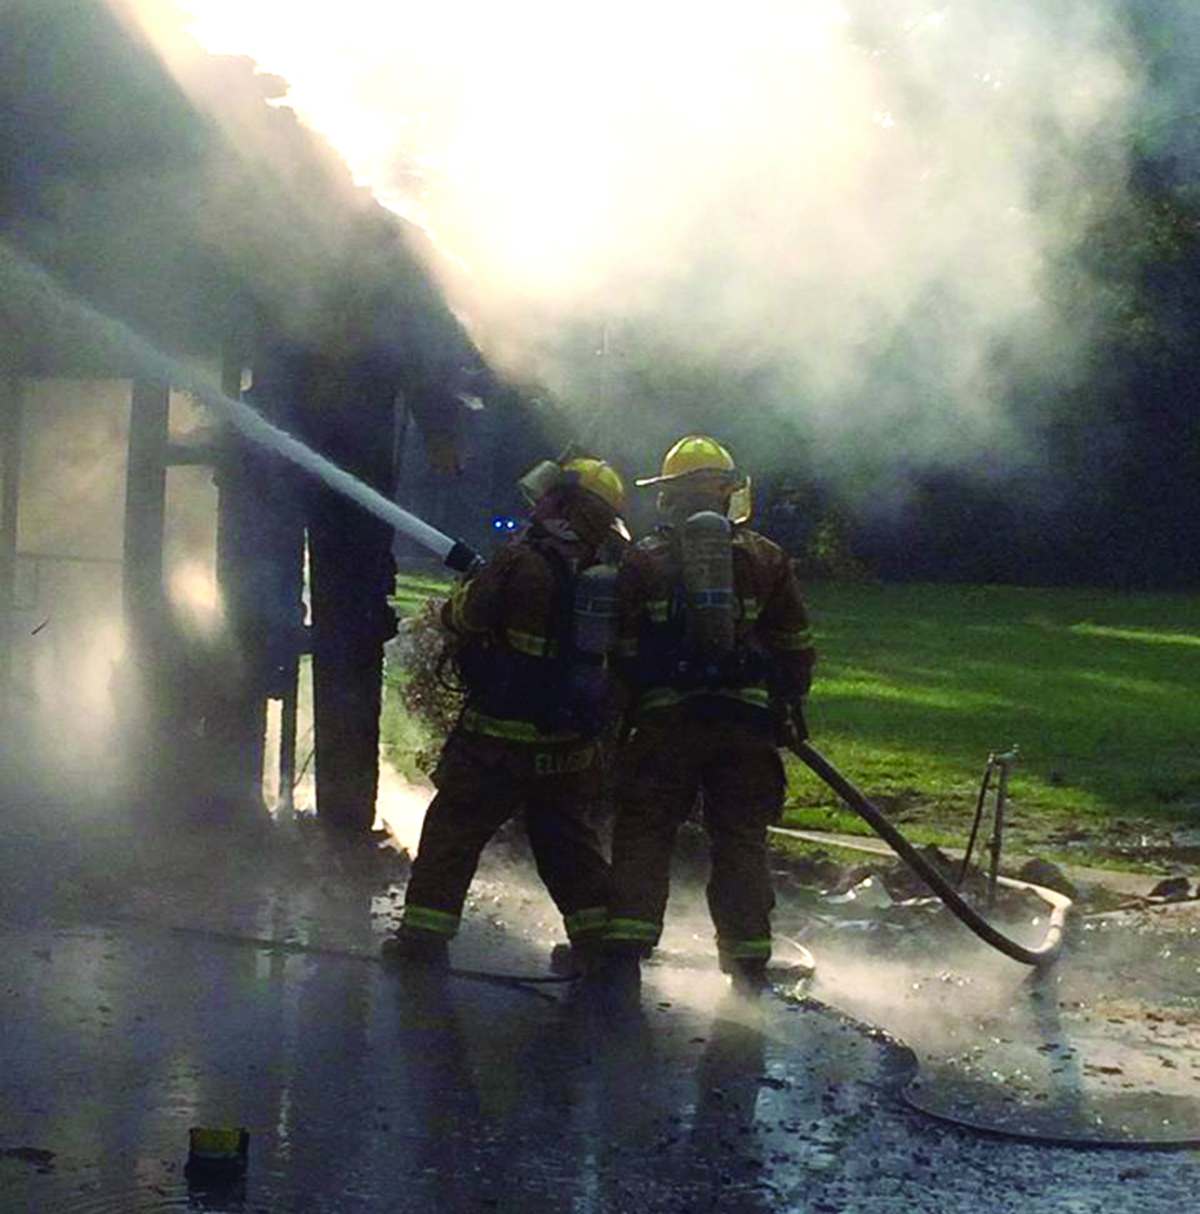 Working quickly, the fire department was able to extinguish the fire in about 15 minutes.